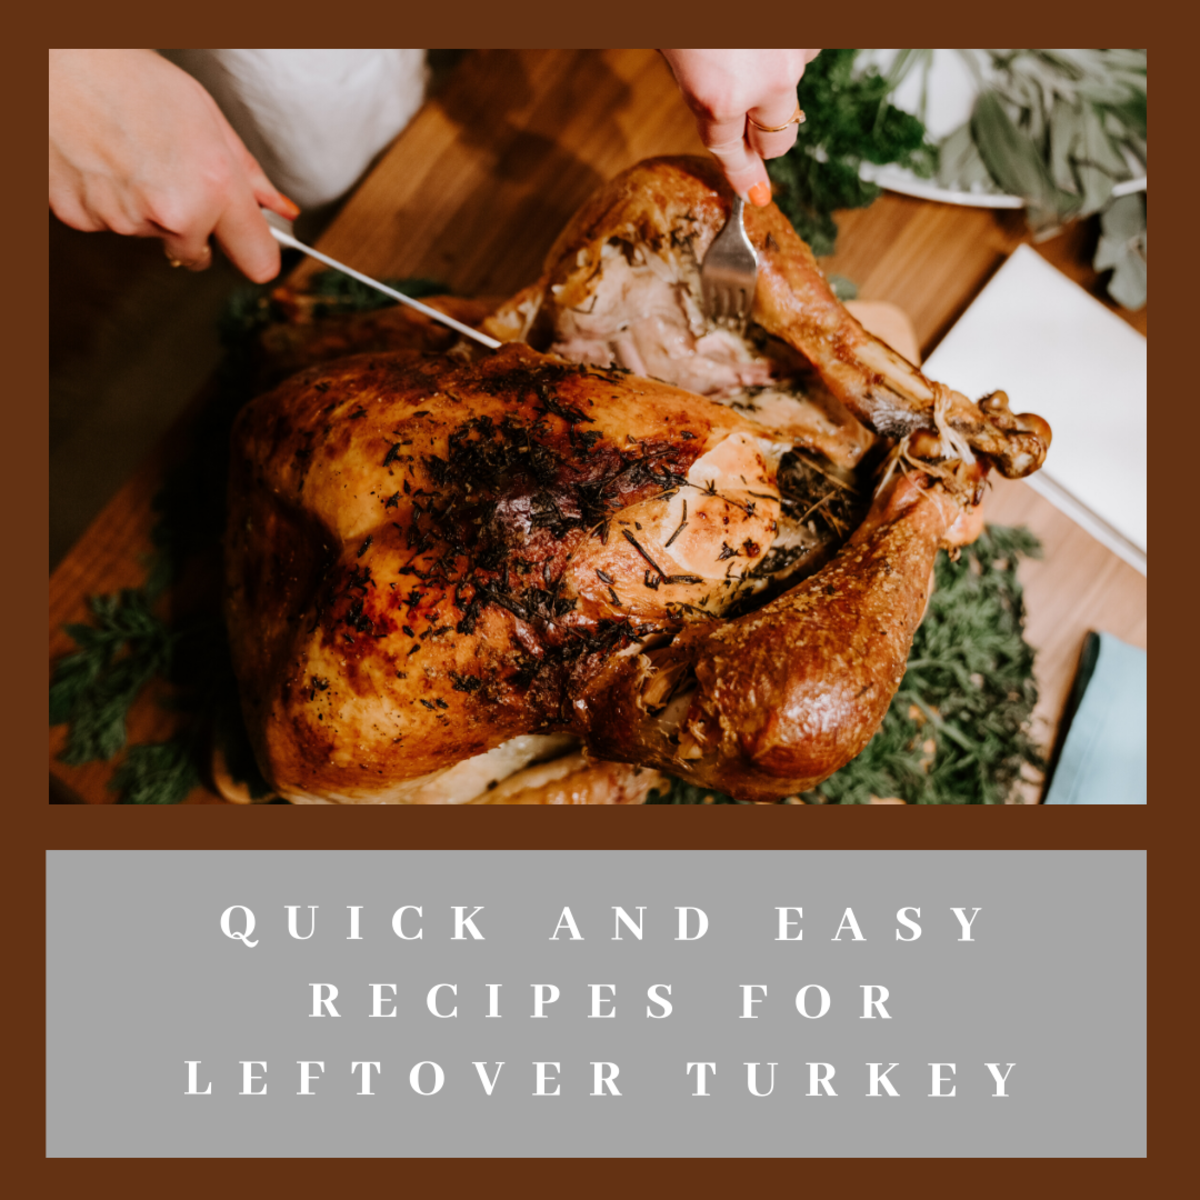 Don't let your leftover turkey go to waste.